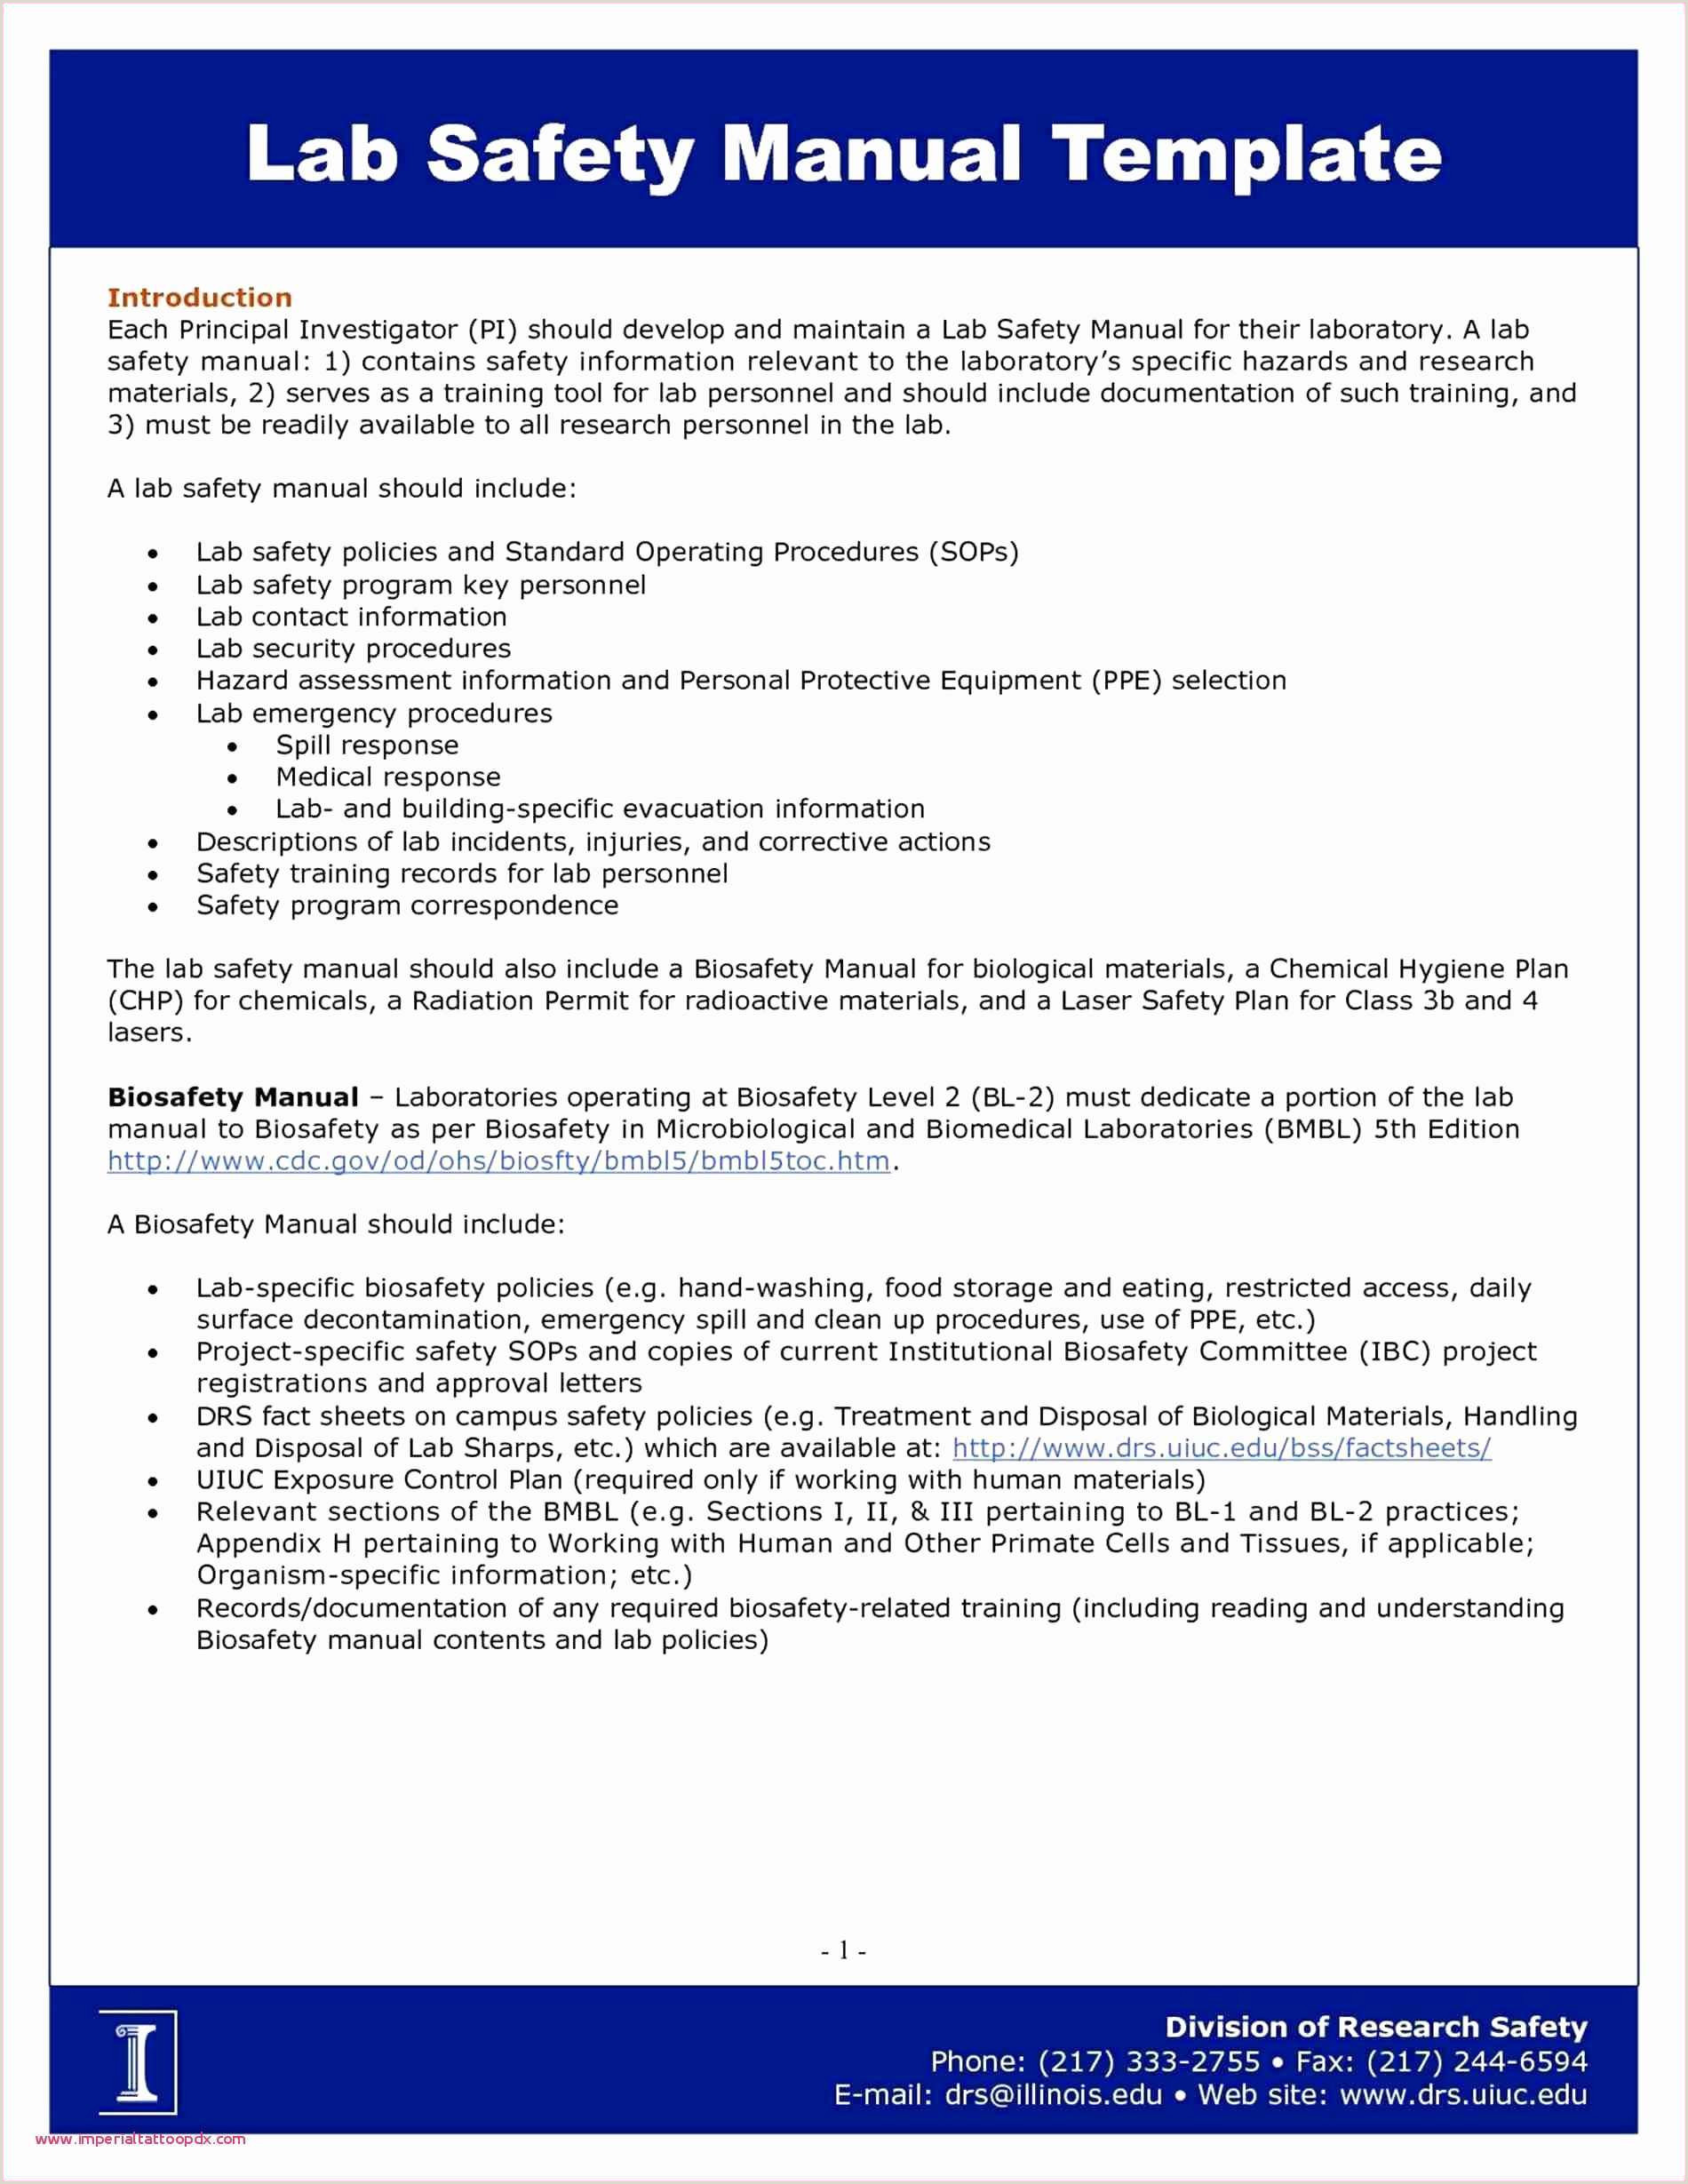 Sample Resume for Call Center Agent without Experience 51 Unique Call Center Business Plan Template Image